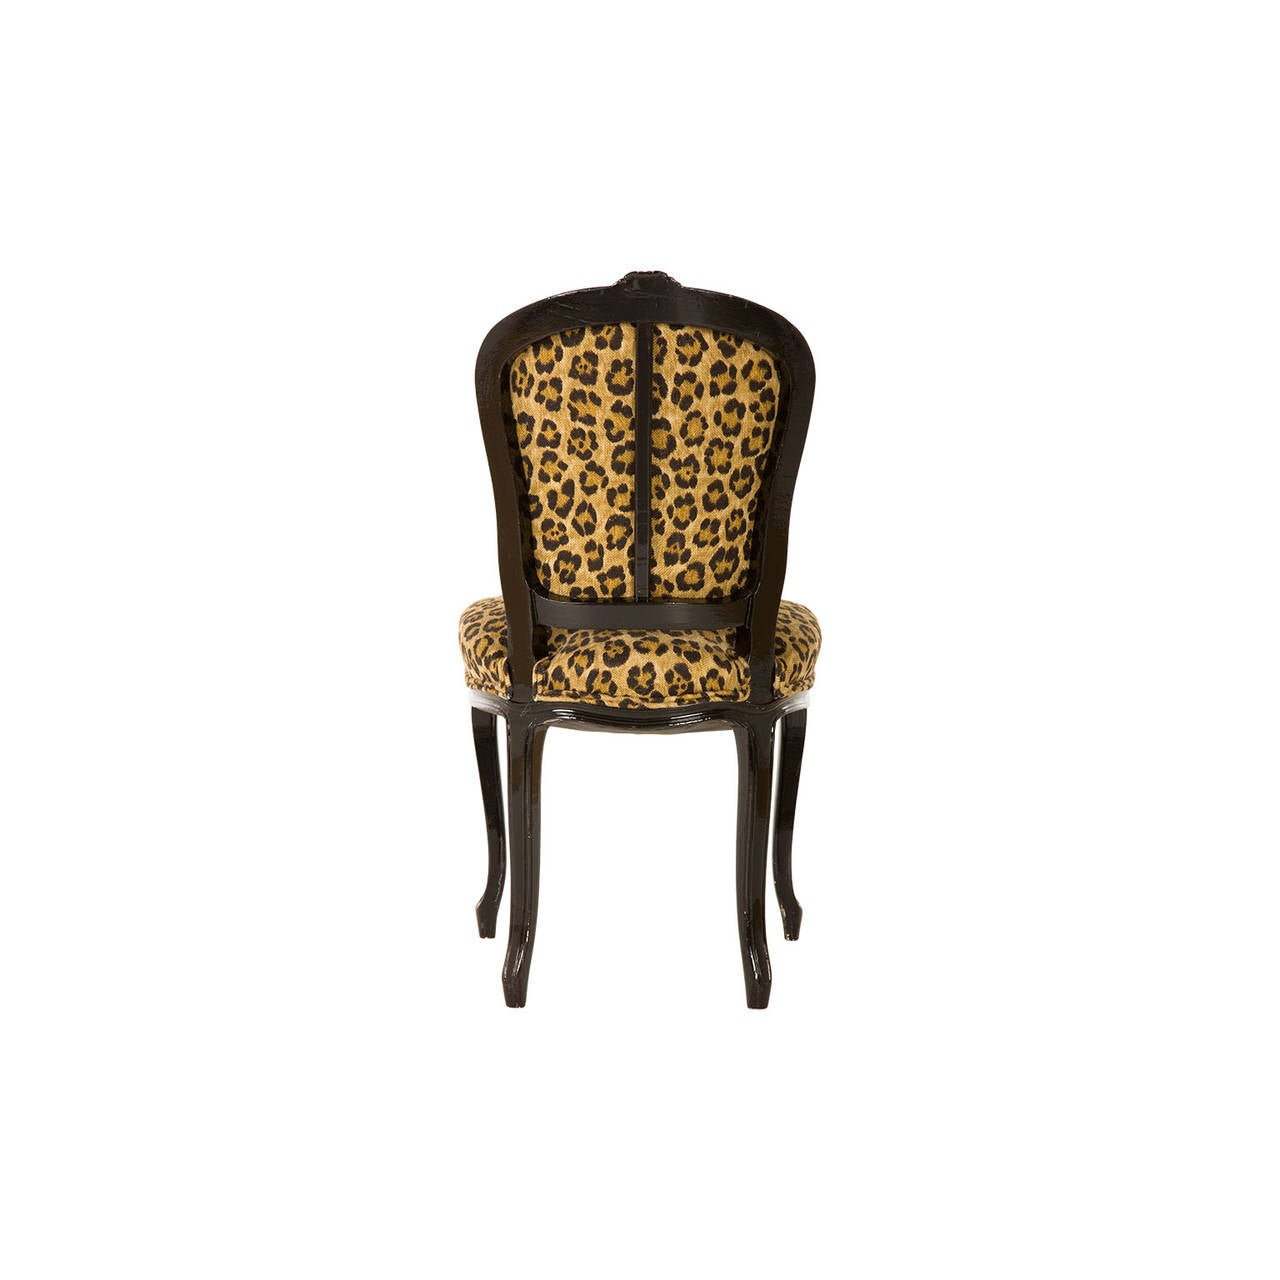 Animal Print Dining Chairs Vintage Leopard Print Cafe Chair At 1stdibs